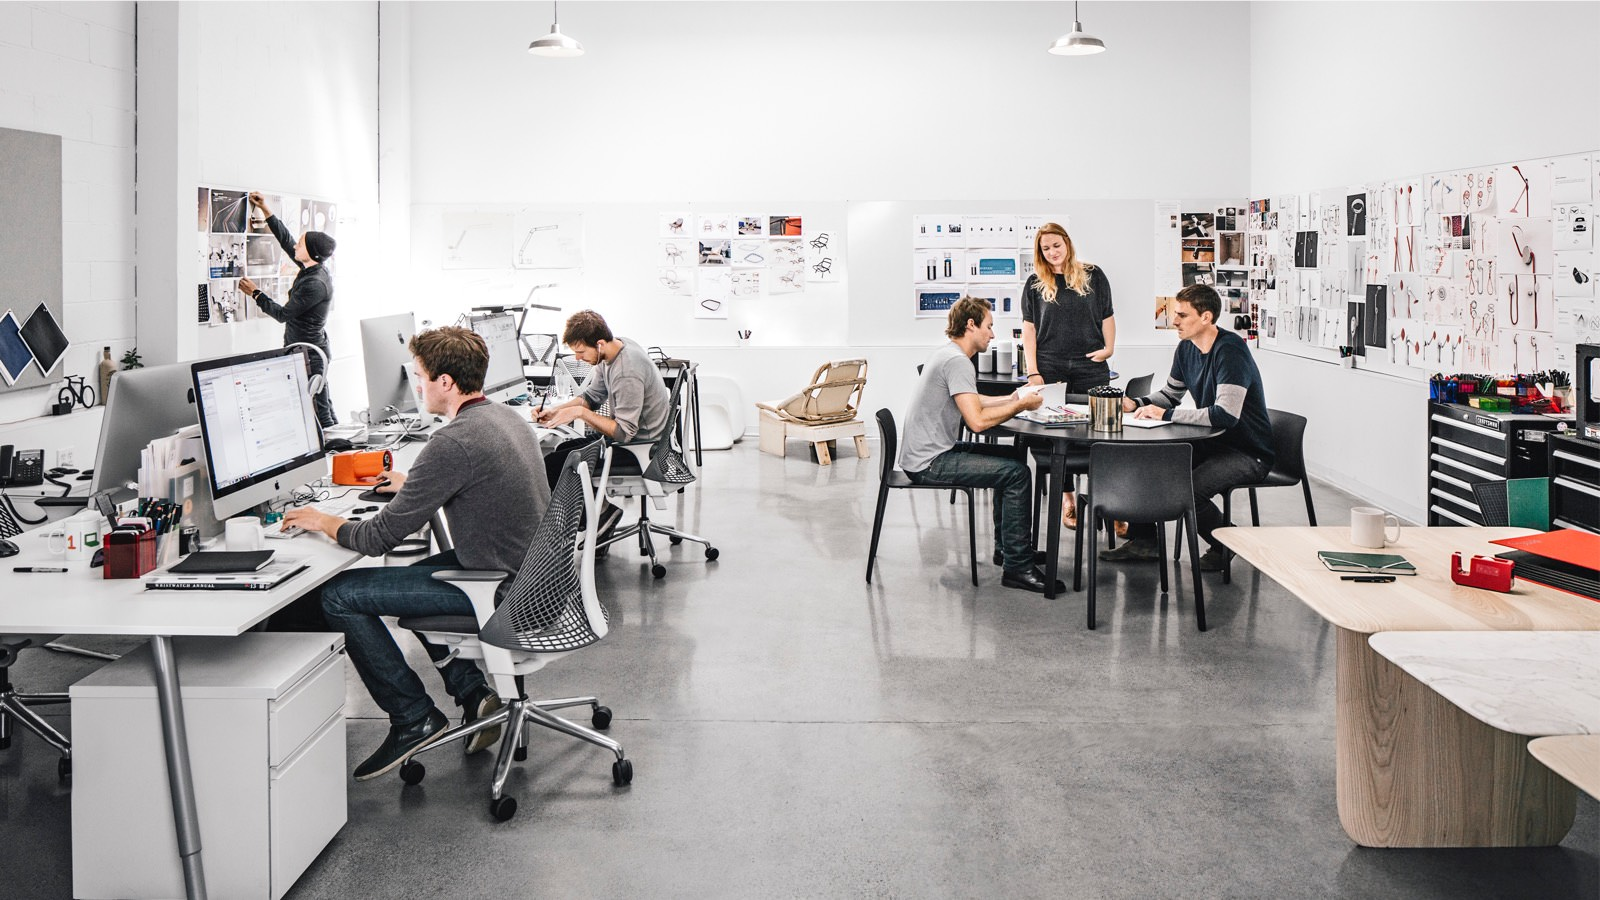 A photo of a workplace with people working at computers while sitting at long desks in Aeron Chairs. A trio of colleagues meet nearby.